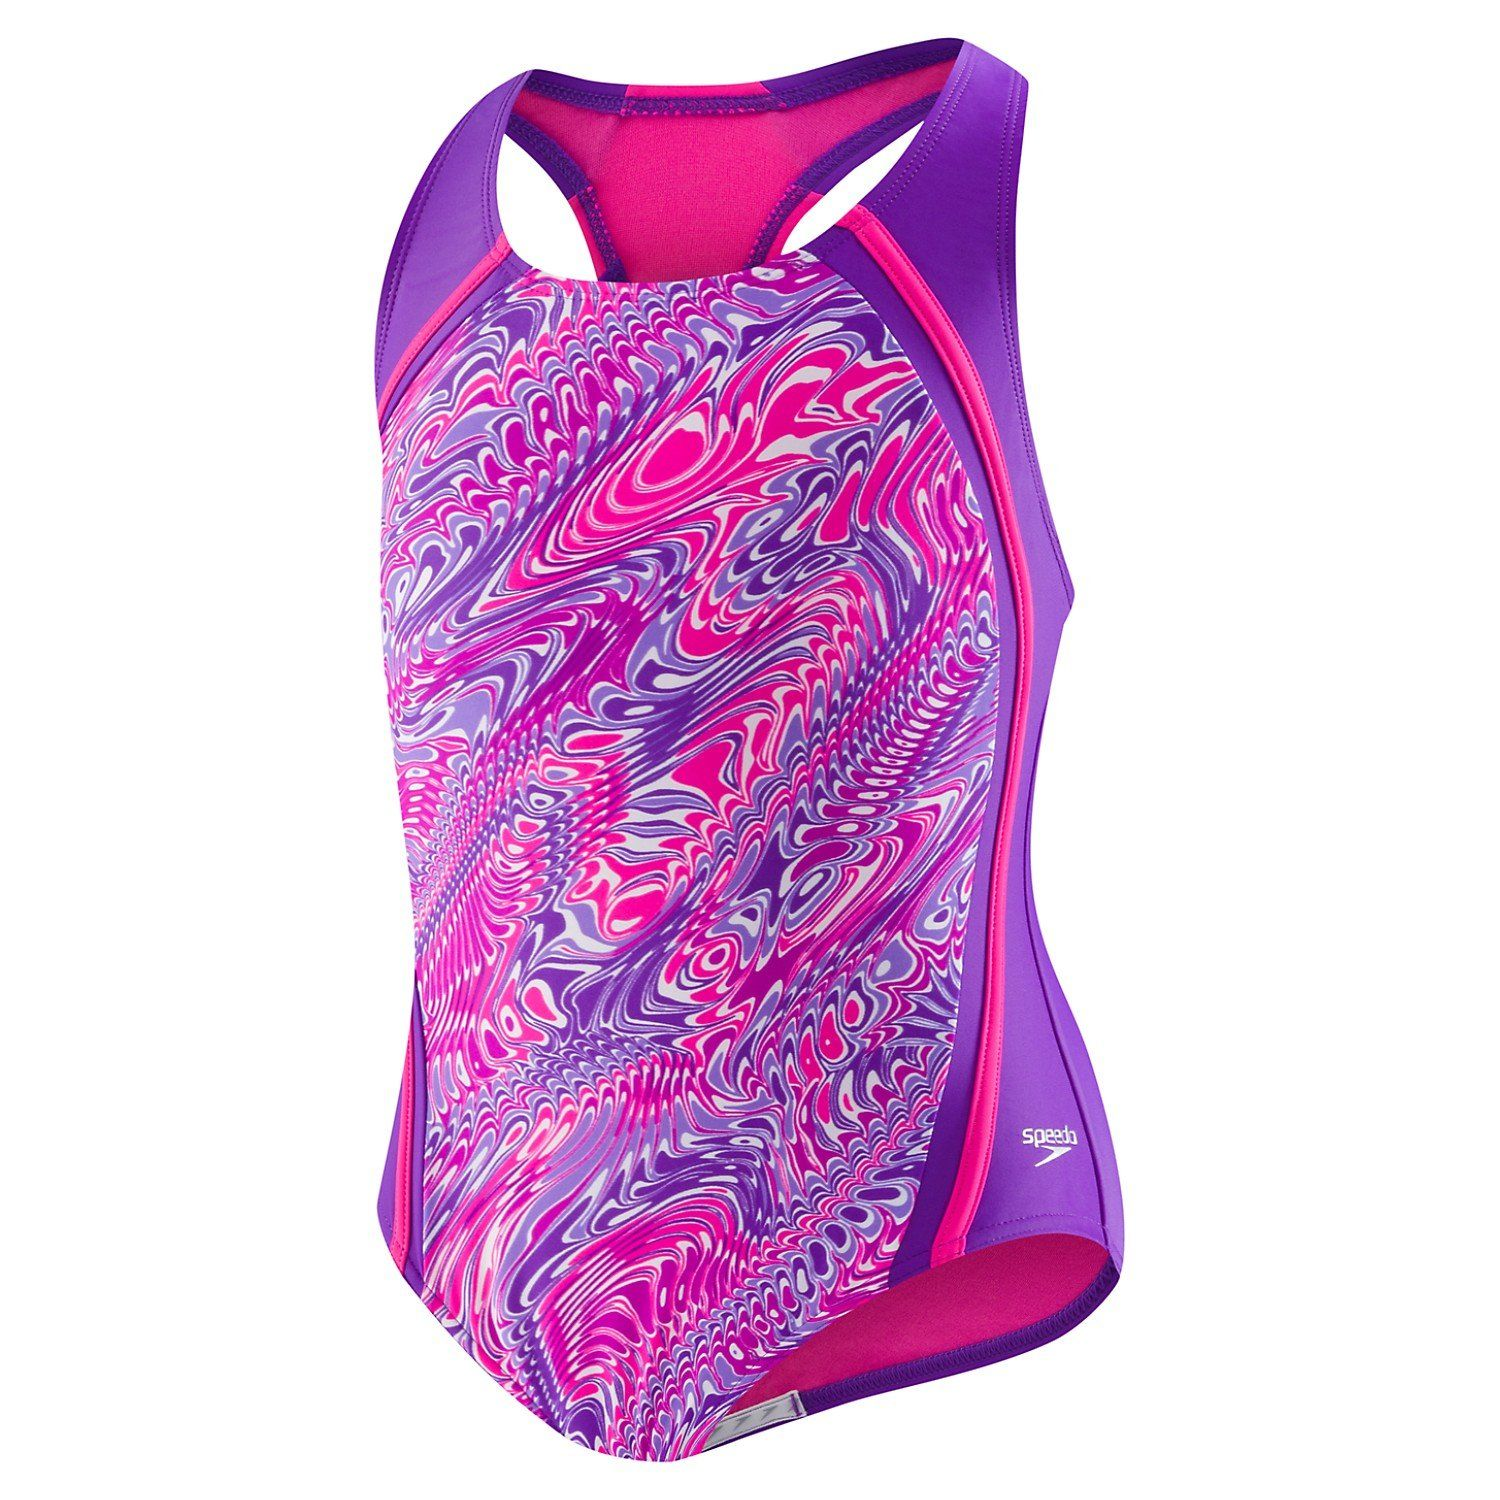 490a9f5f6bc3f Speedo Girls' Printed Sport Splice (7-16)- Purple | Kid's Swim Gear ...